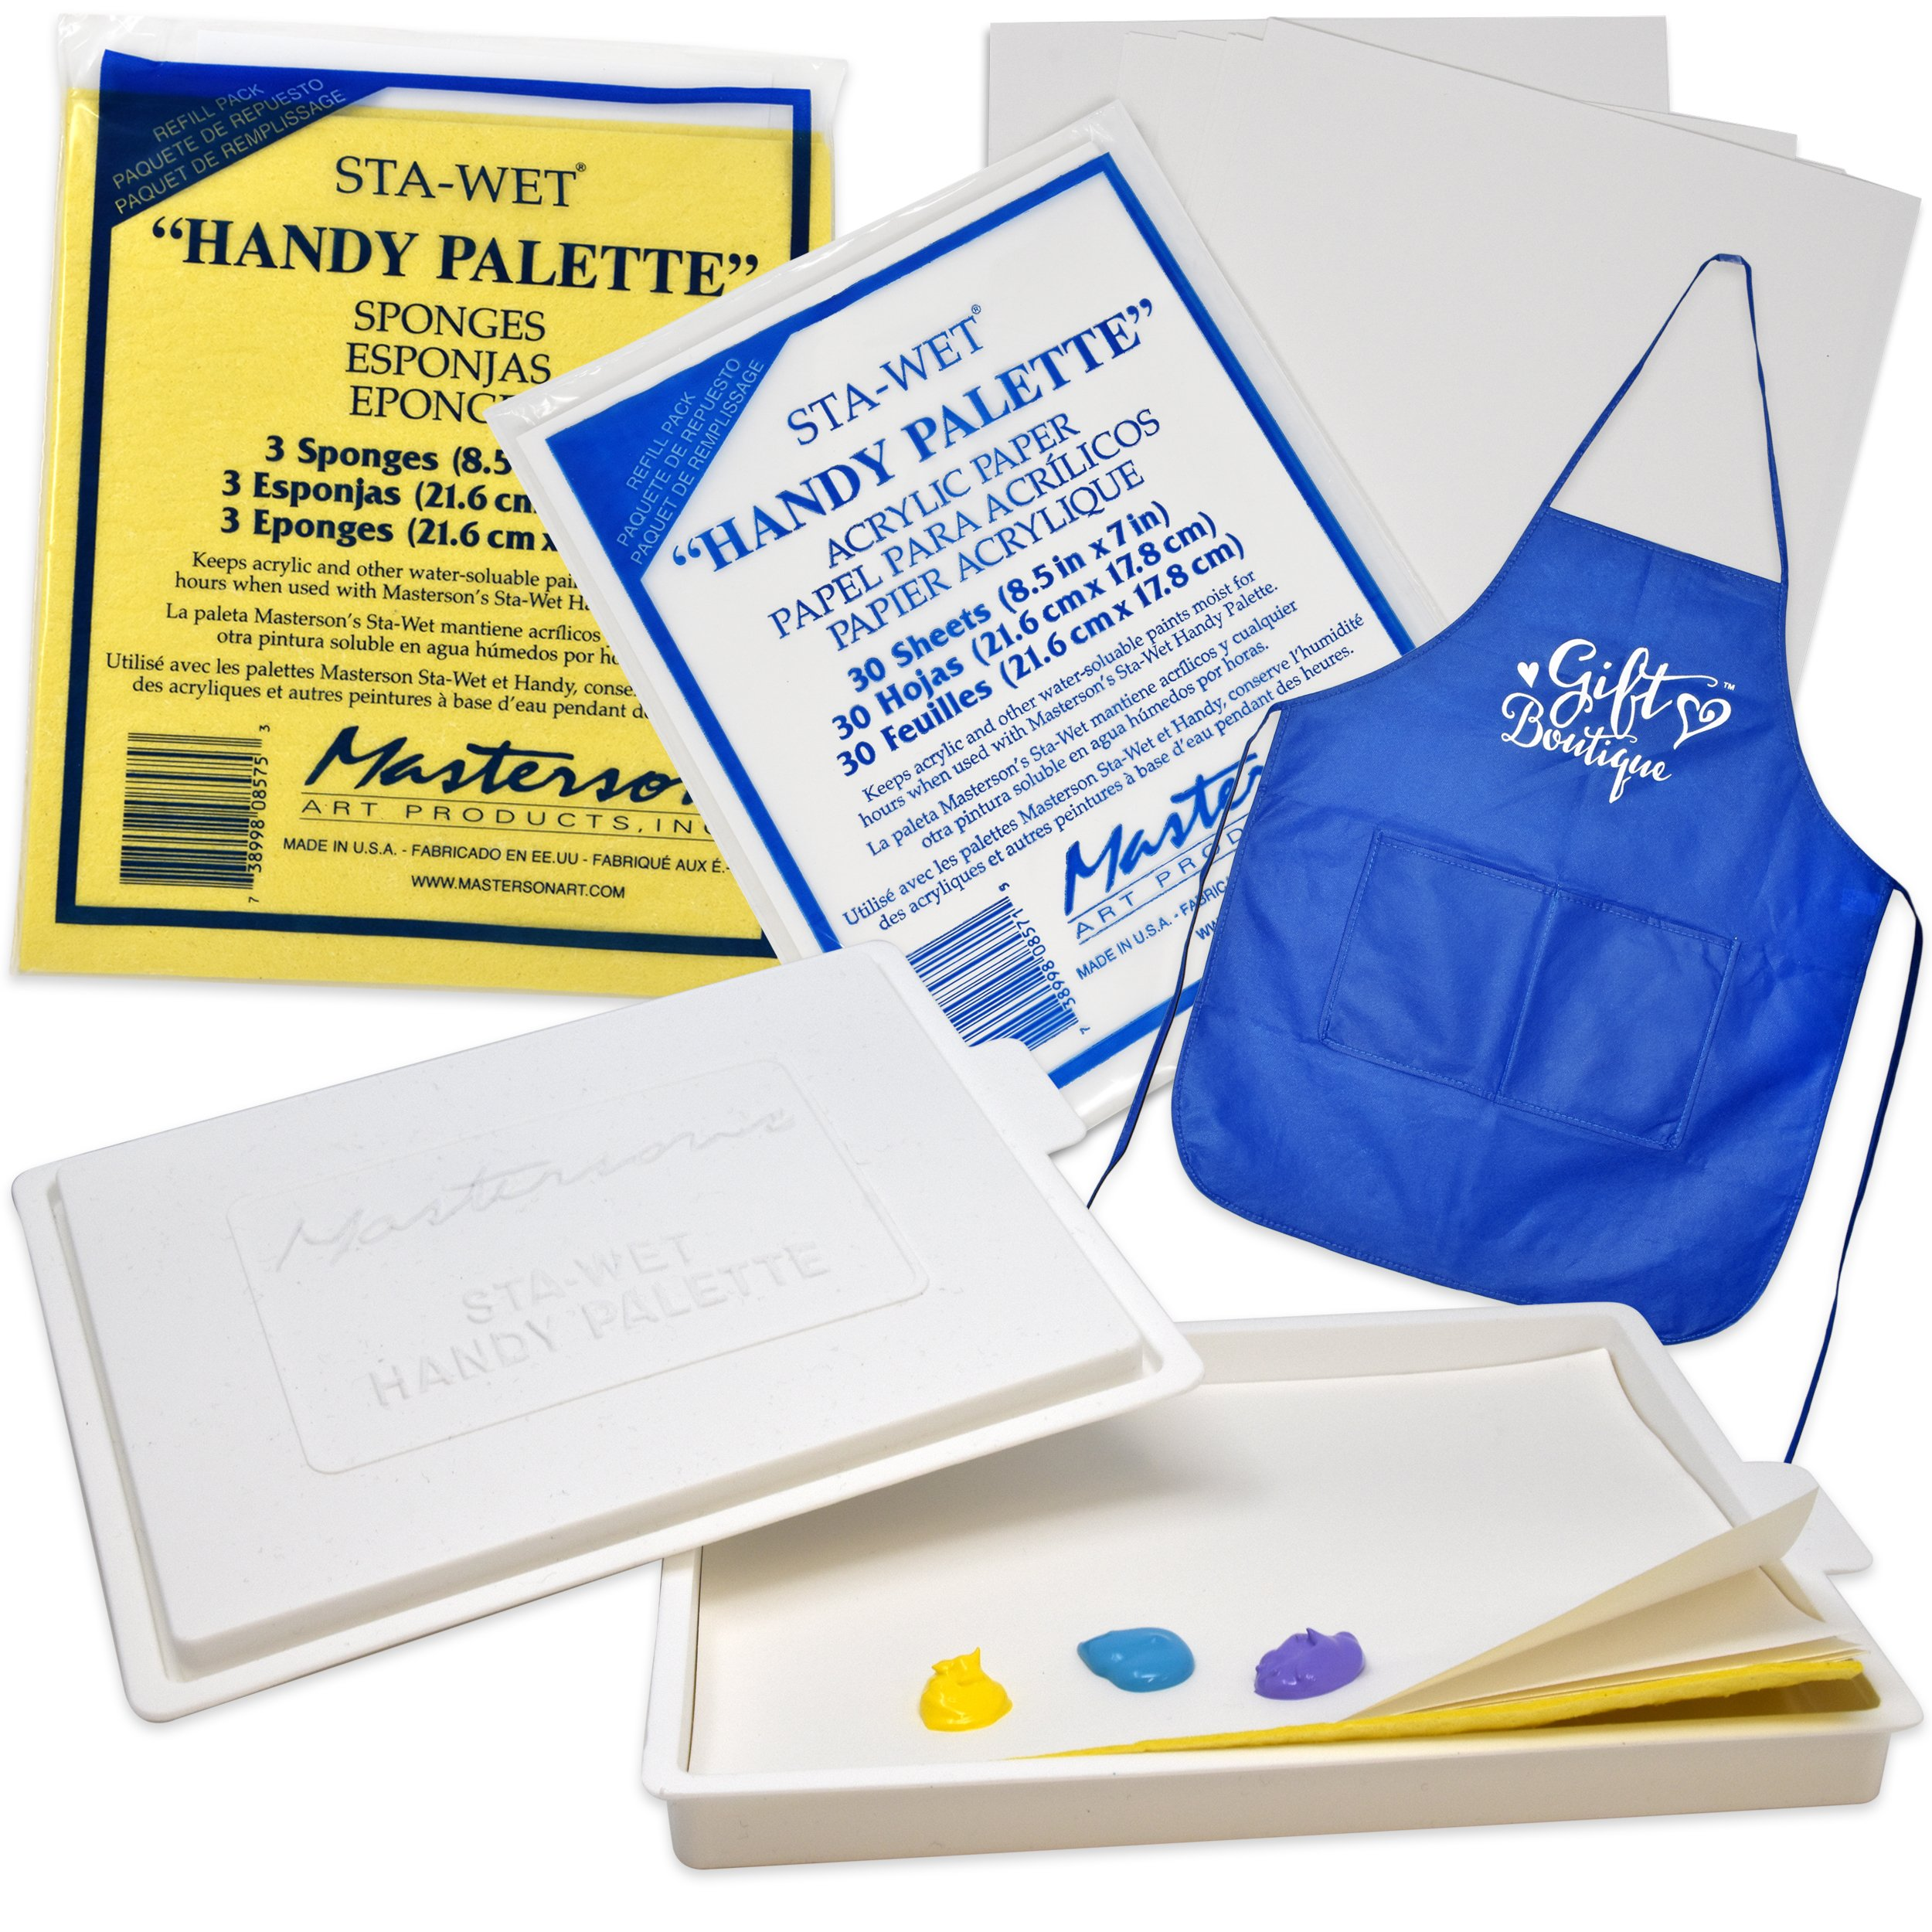 Masterson Sta-Wet Palette with Airtight Lid Keeps Paint Wet Fresh for Days, with Pack of 30 Acrylic Paper 8 1/2 in. x 7 in, and Pack of 3 Handy Palette Sponges + Bonus Gift Boutique Artist Full Apron by Masterson